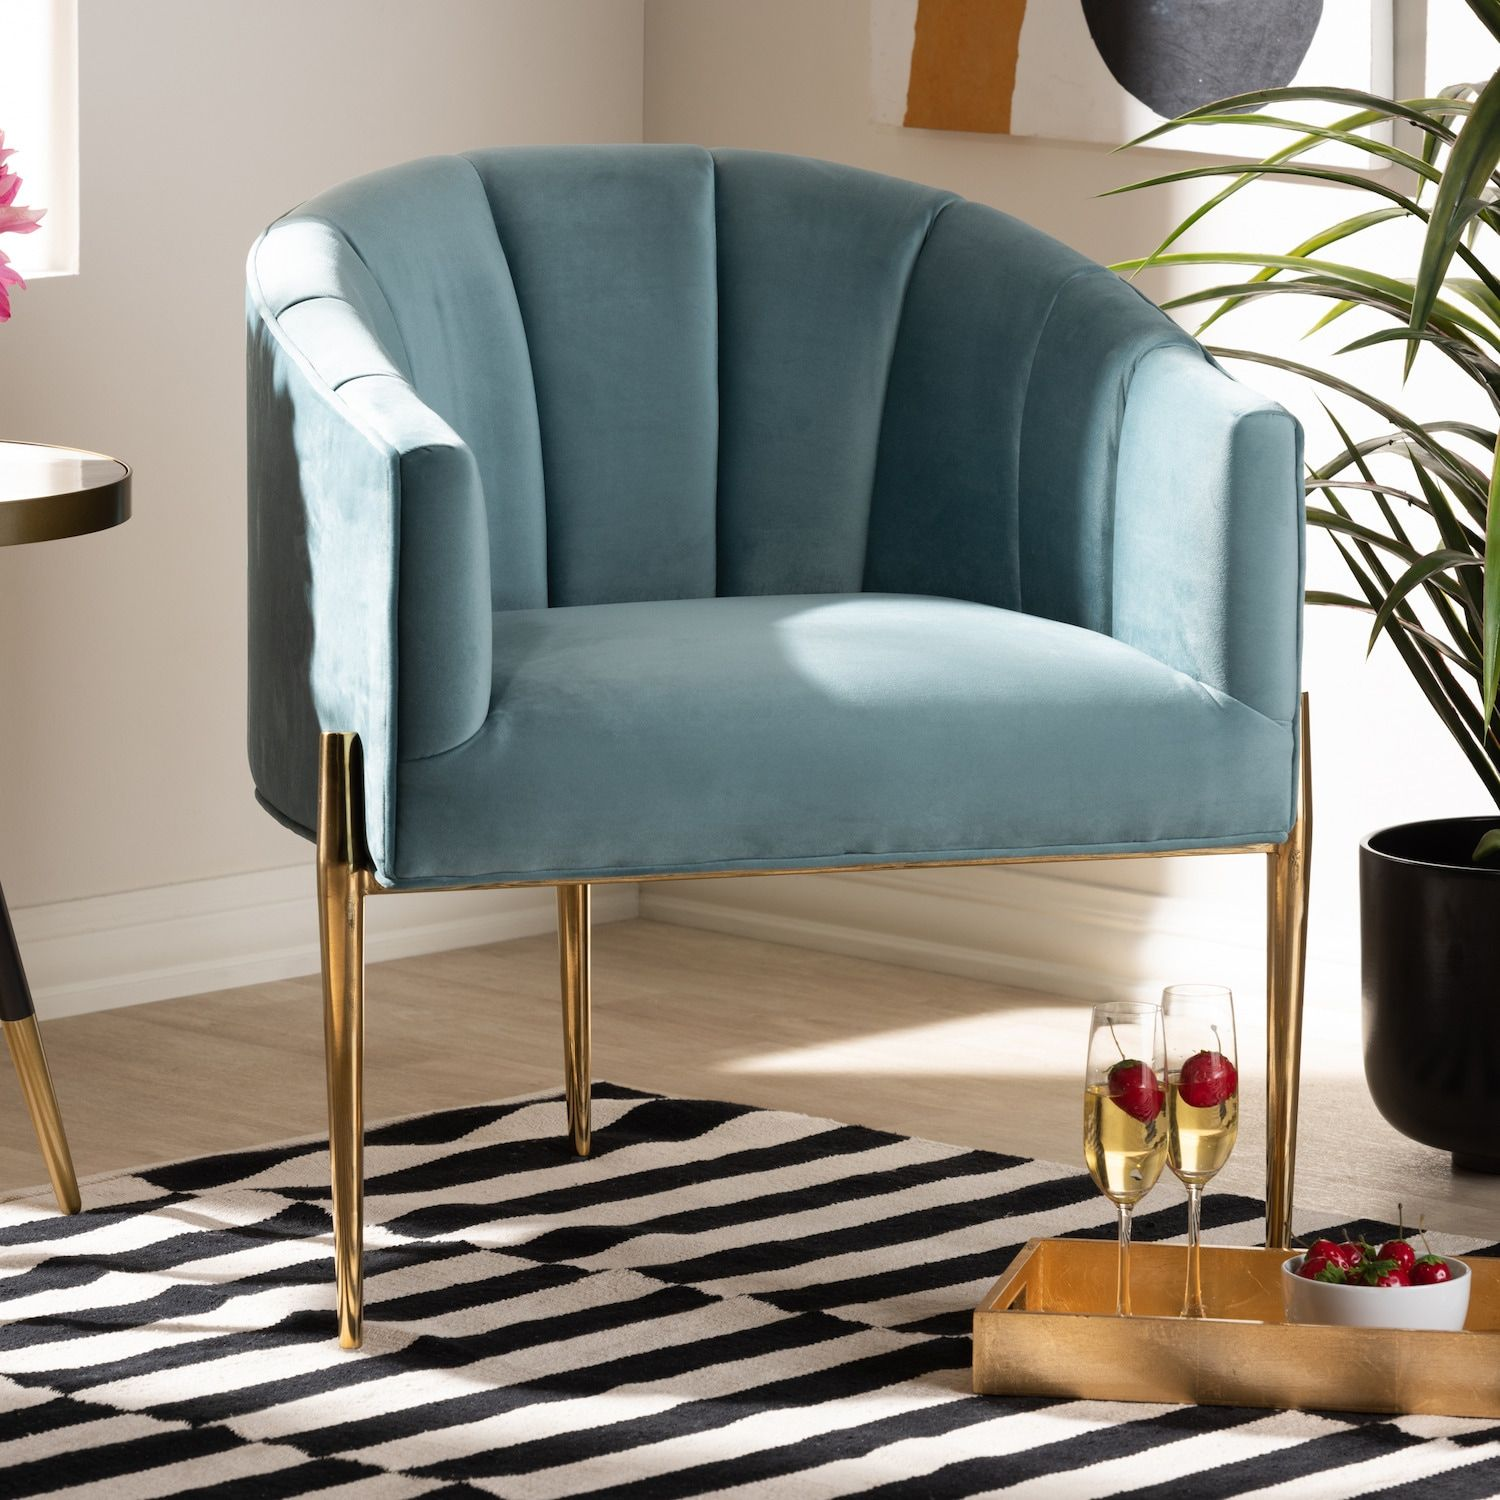 Baxton Studio Clarisse Blue Chair in 2020 Fabric accent